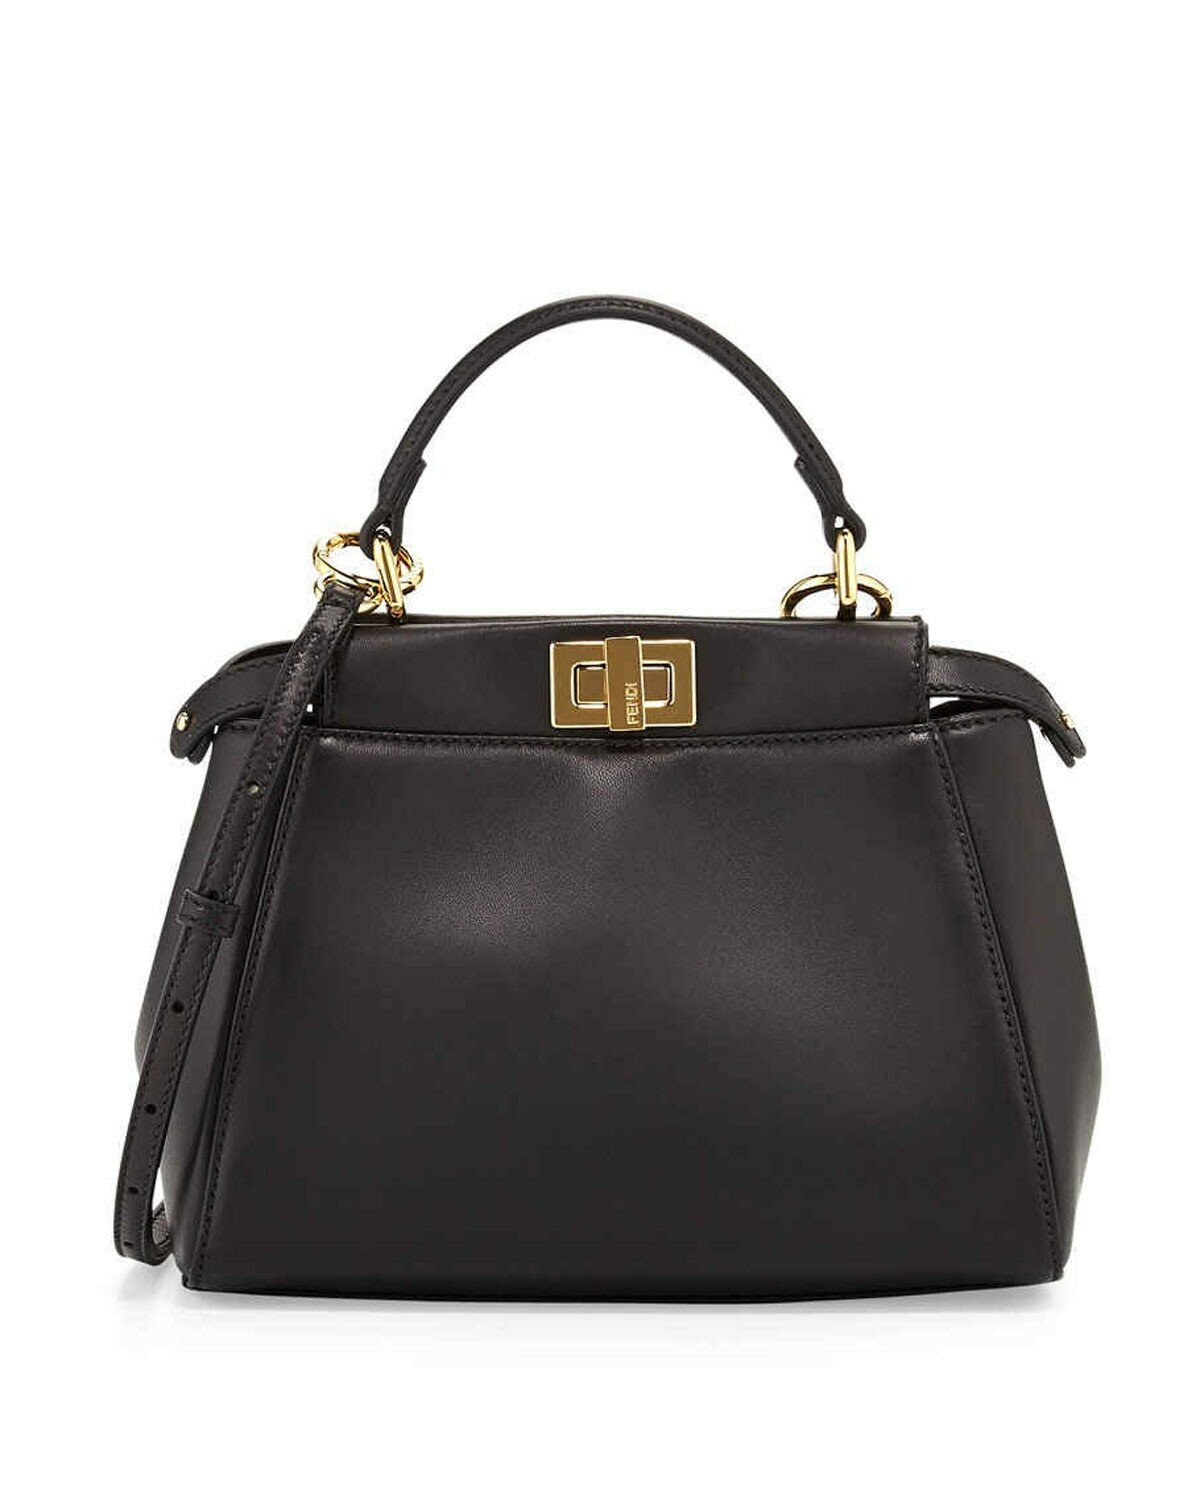 Fendi peekaboo mini satchel bag black,accessories boston,discount sale boston